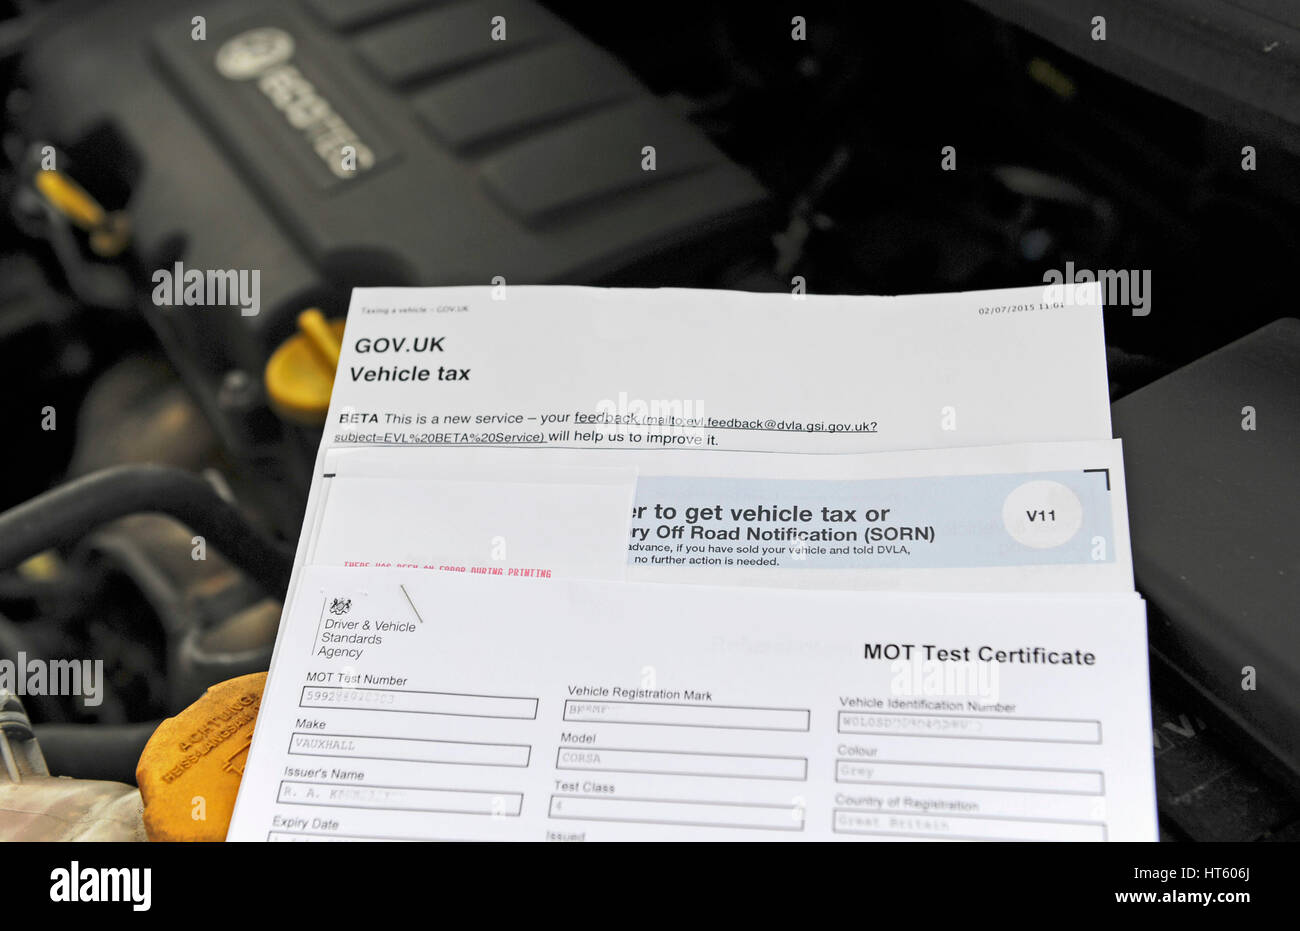 Mot certificate stock photos mot certificate stock images alamy uk vehicle mot test certificate and tax renewal form stock image 1betcityfo Image collections